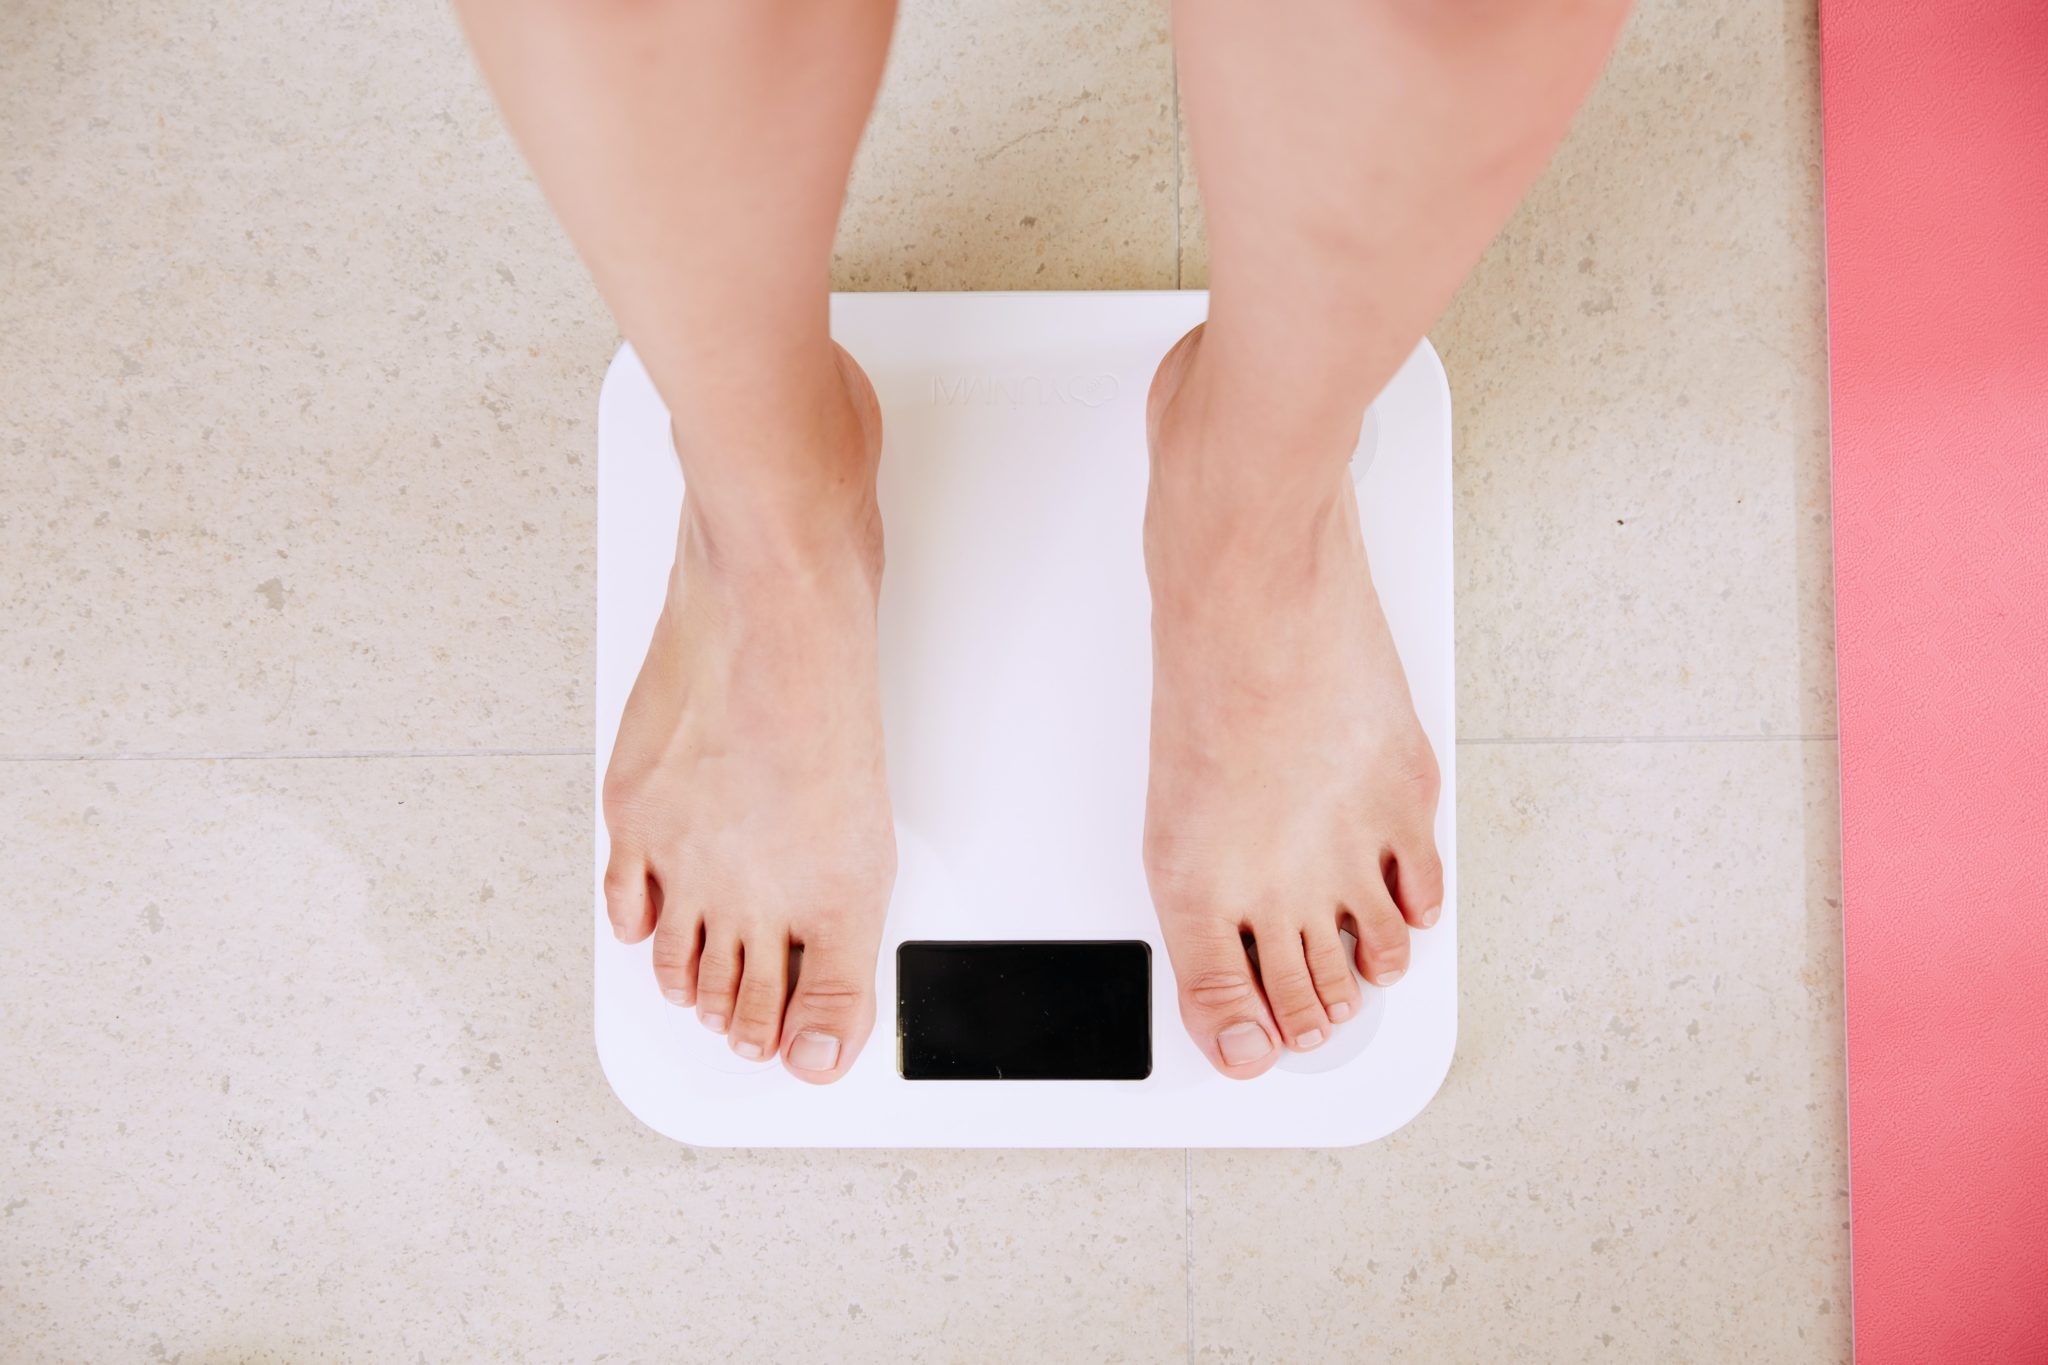 person standing on scale to measure body weight for bariatric surgery